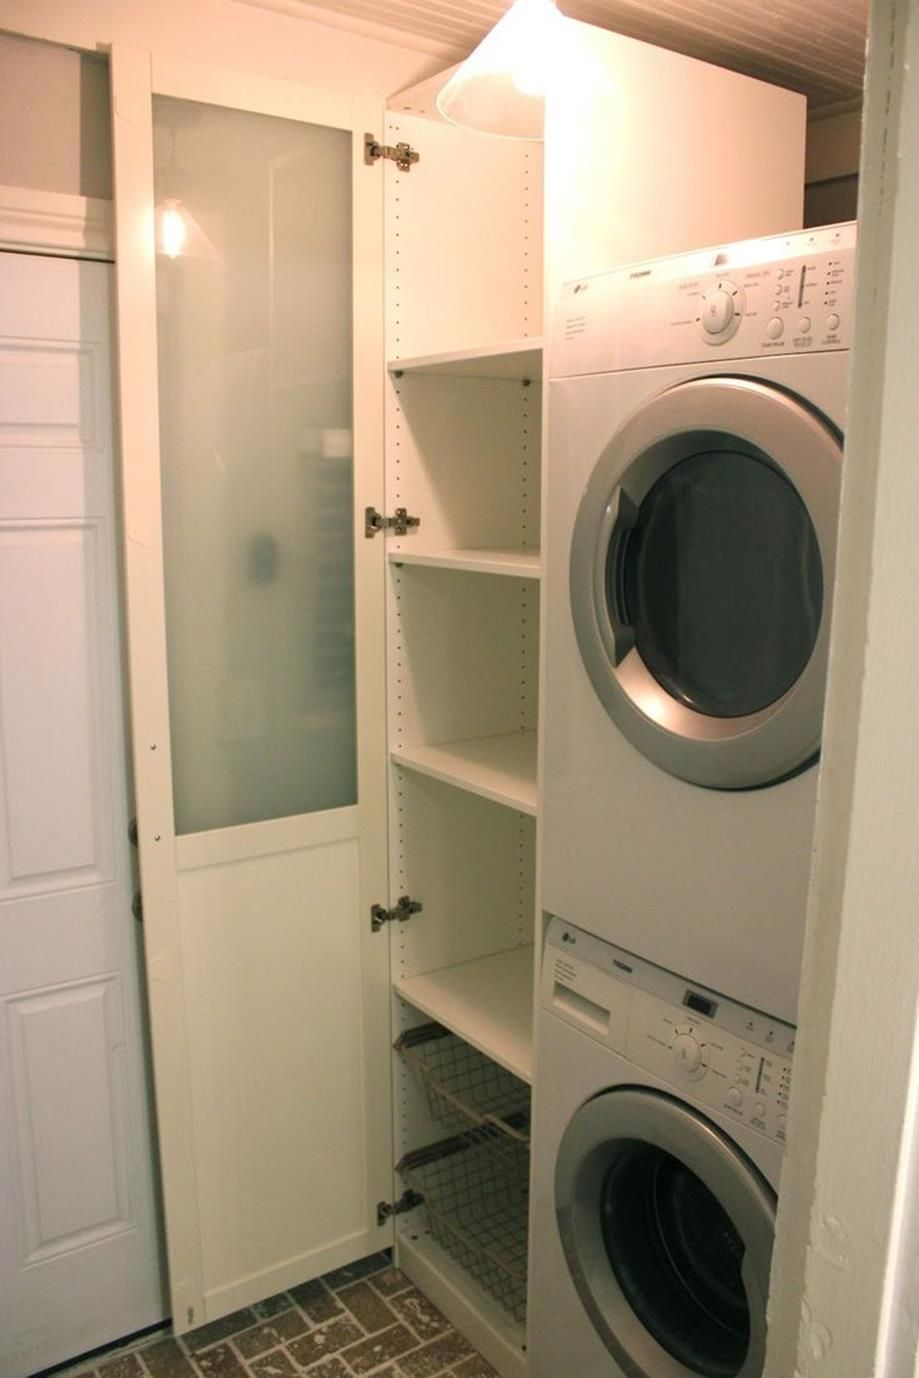 20 Optional Laundry Room Cabinets Ideas   Let's DIY Home   Ikea ...